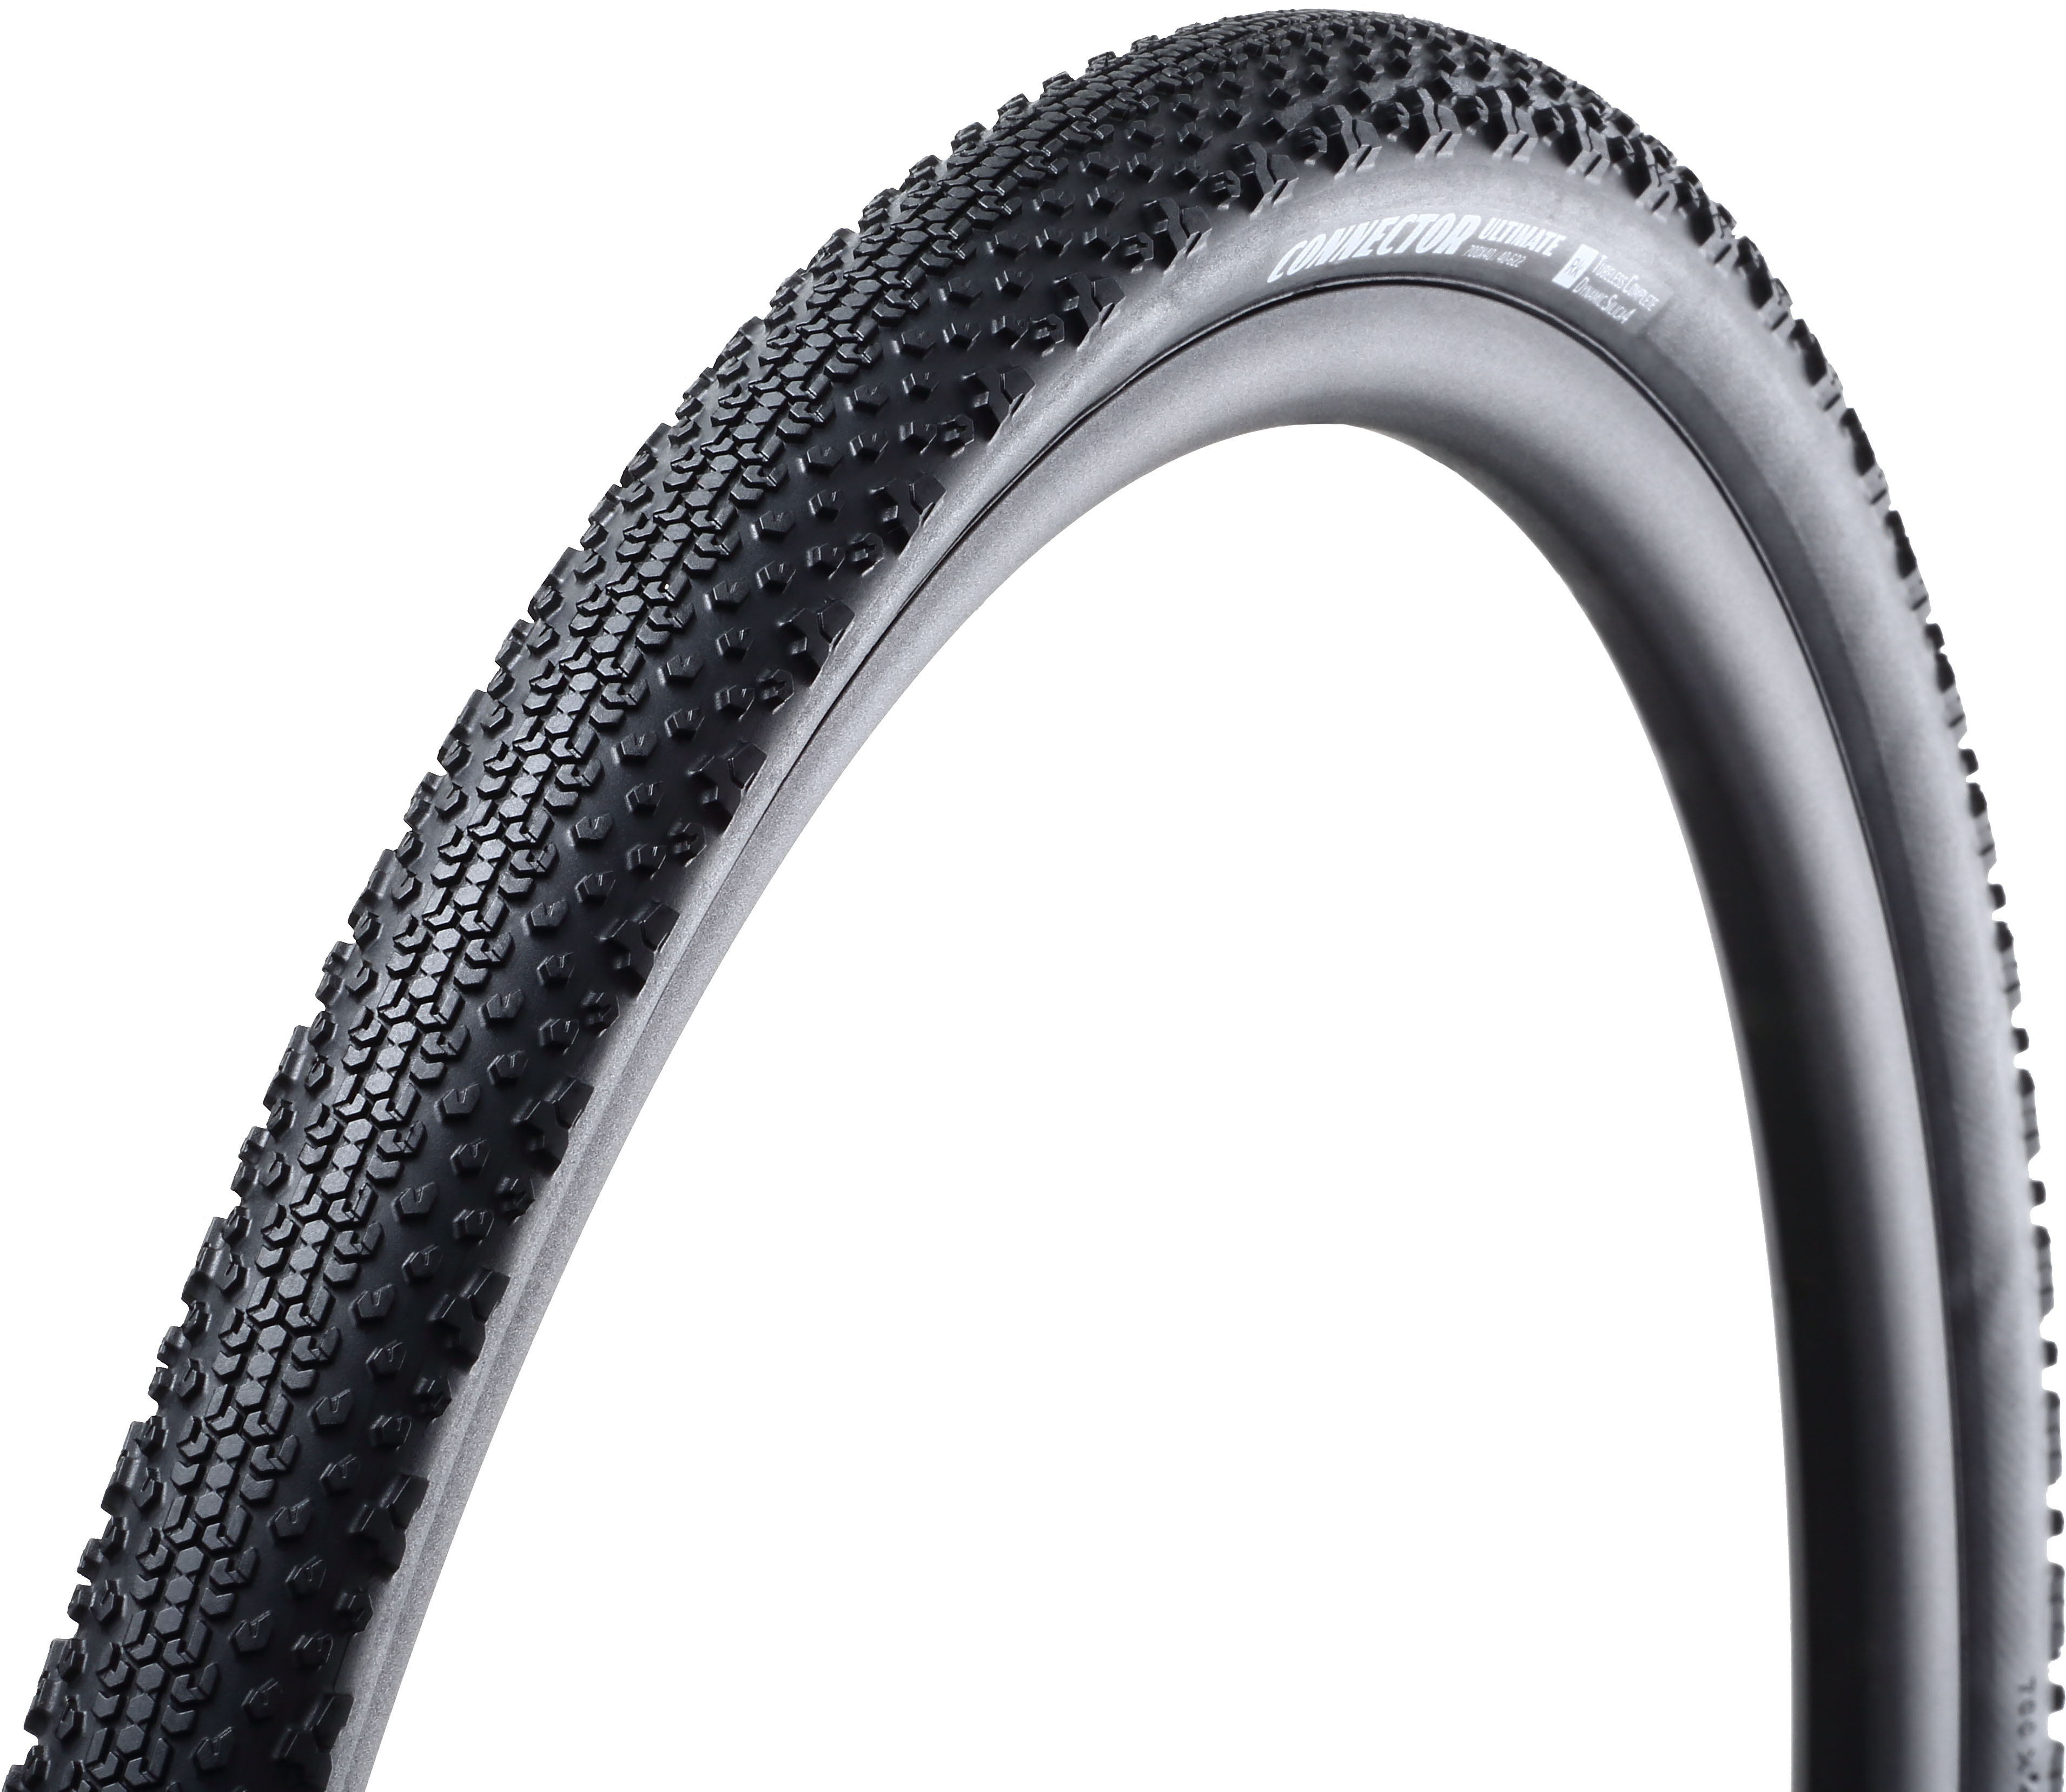 Goodyear Connector Tubeless Cyclocross Tyre   Tyres